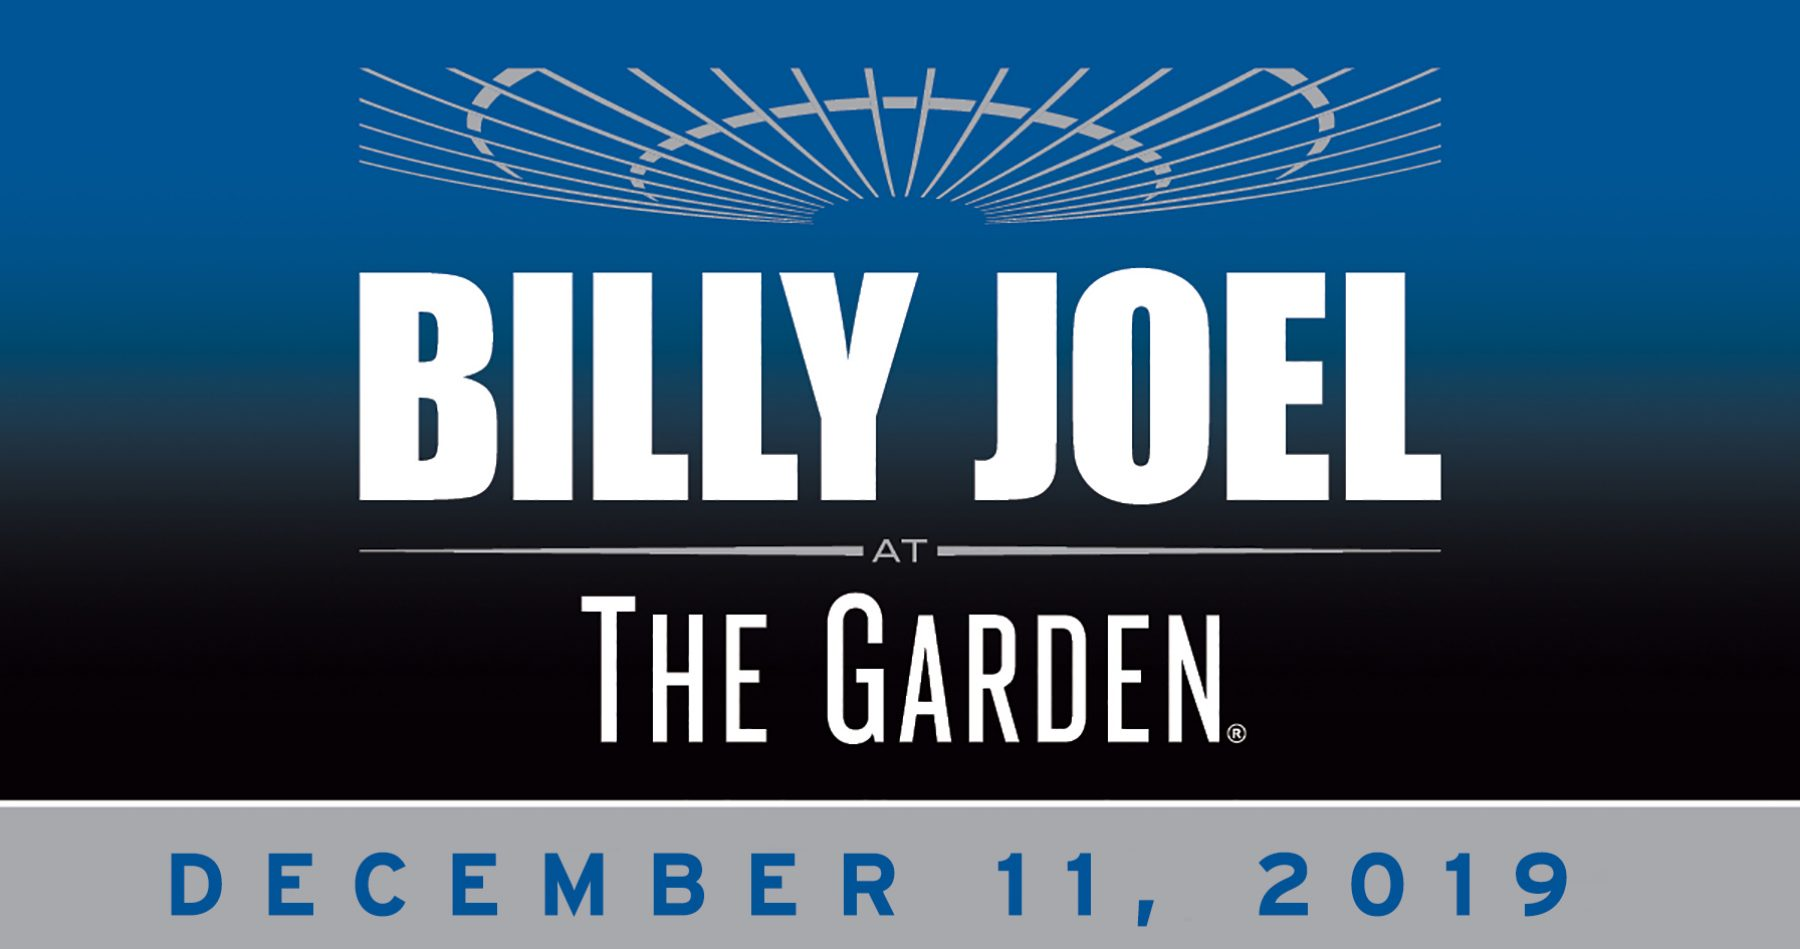 Home | Billy Joel Official Site